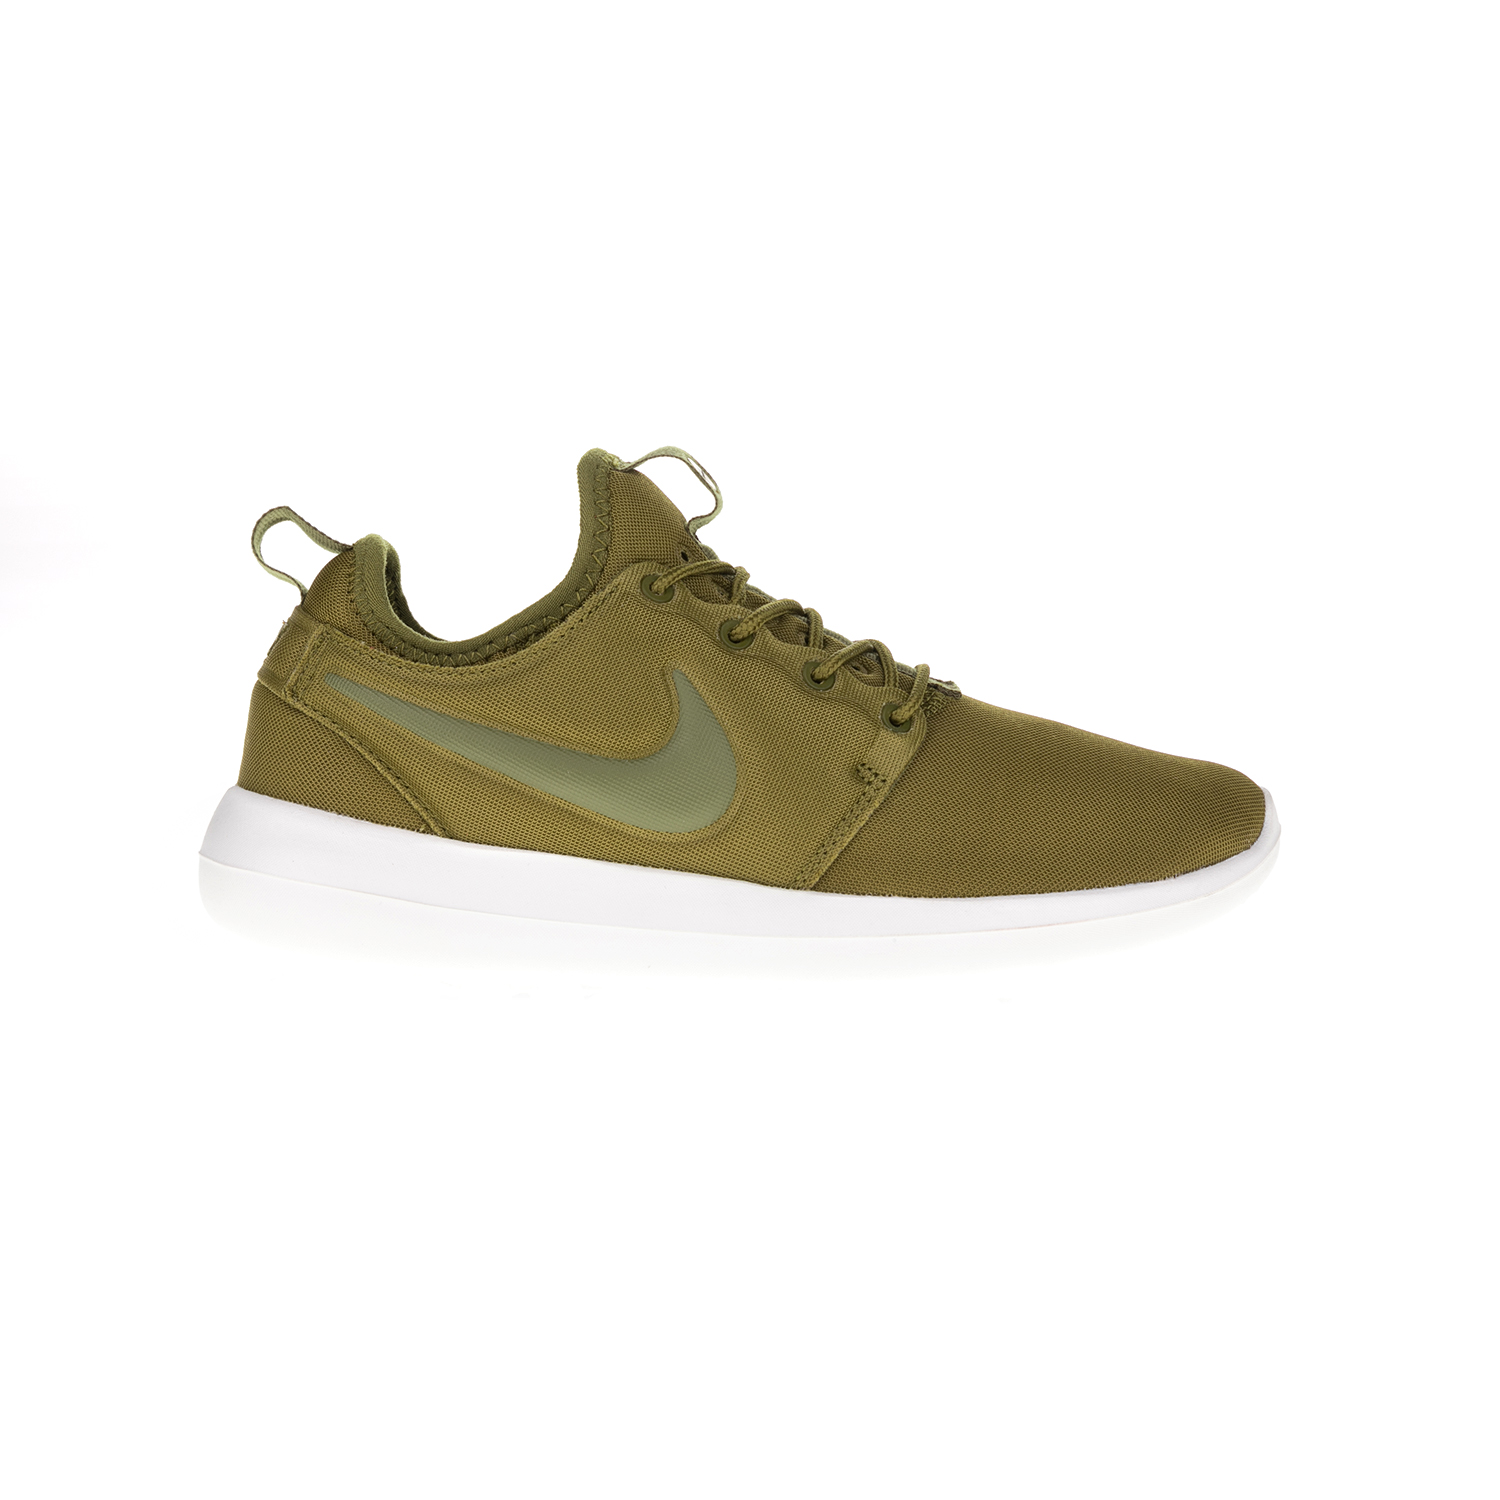 NIKE – Γυναικεία παπούτσια NIKE ROSHE TWO χακί